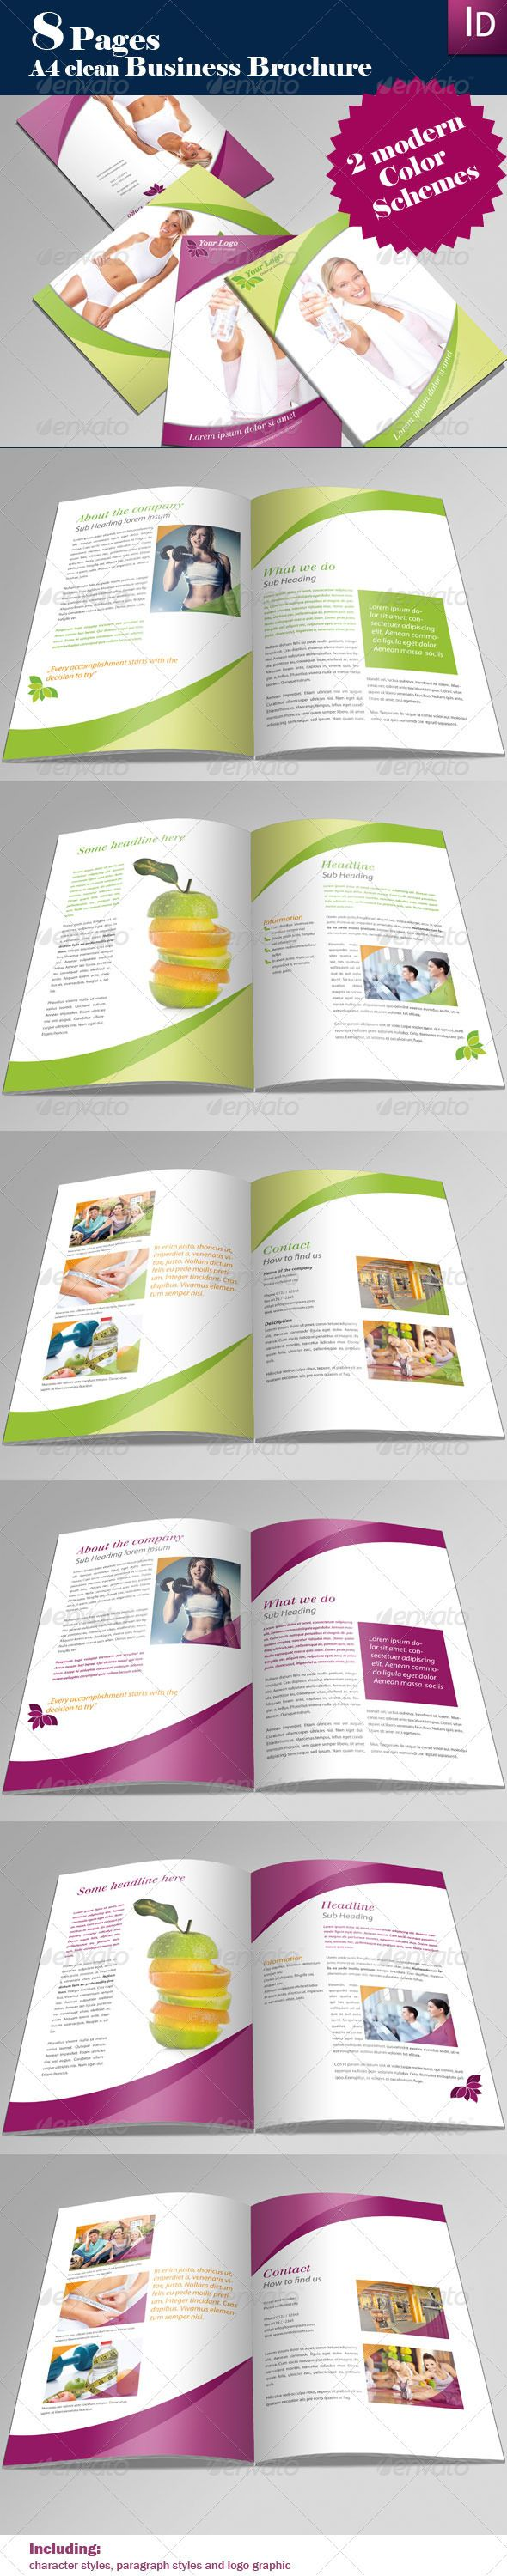 A4 Professional Brochure - Corporate Brochure Template InDesign INDD, Vector AI. Download here: http://graphicriver.net/item/a4-professional-brochure/166361?s_rank=771&ref=yinkira